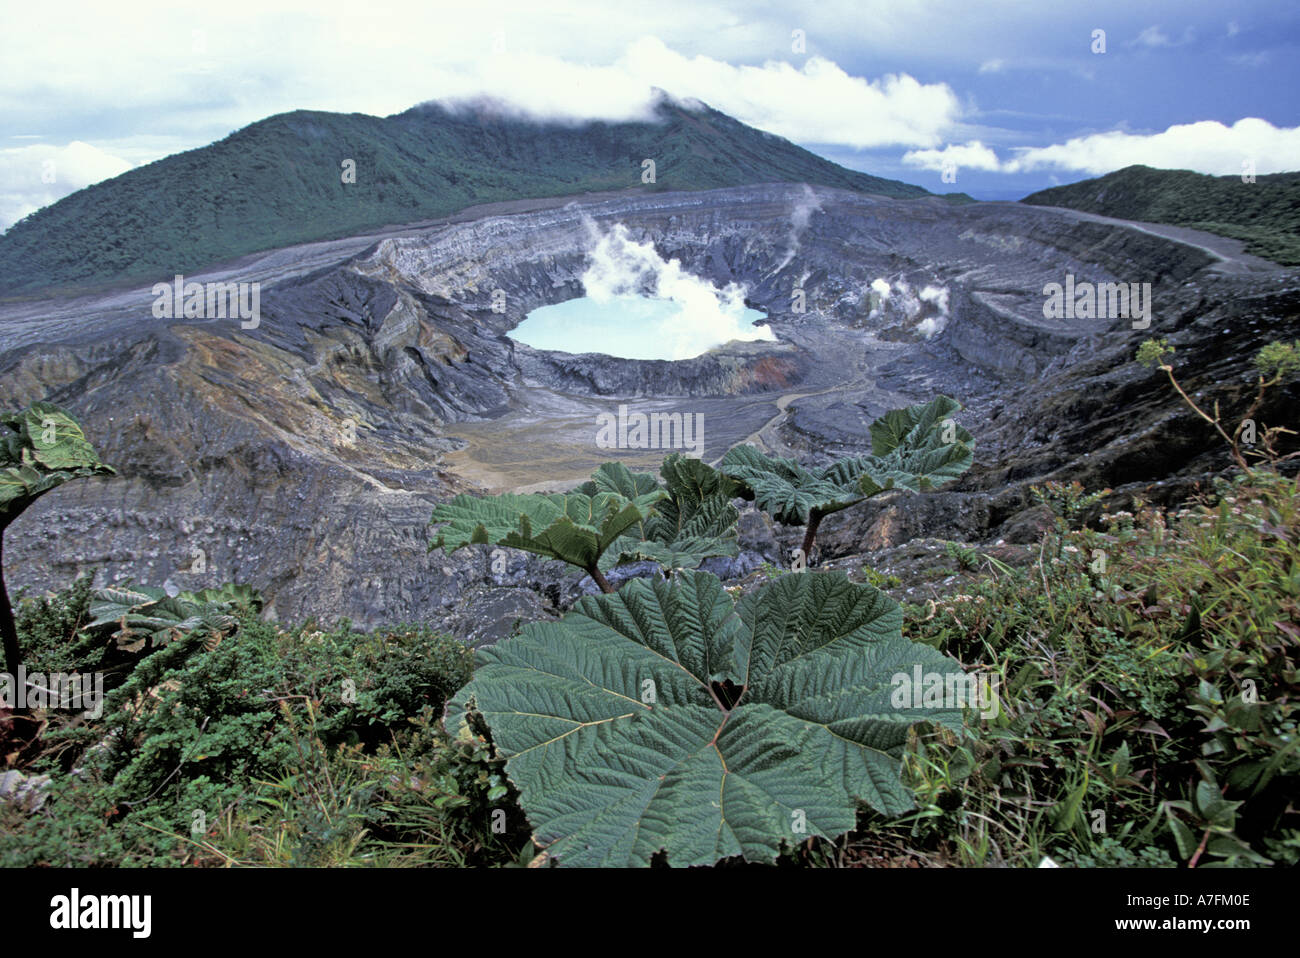 Costa Rica, Volcano Poas National Park, Poas Volcano. Gunnera insignis above lagoon in steaming crater - Stock Image